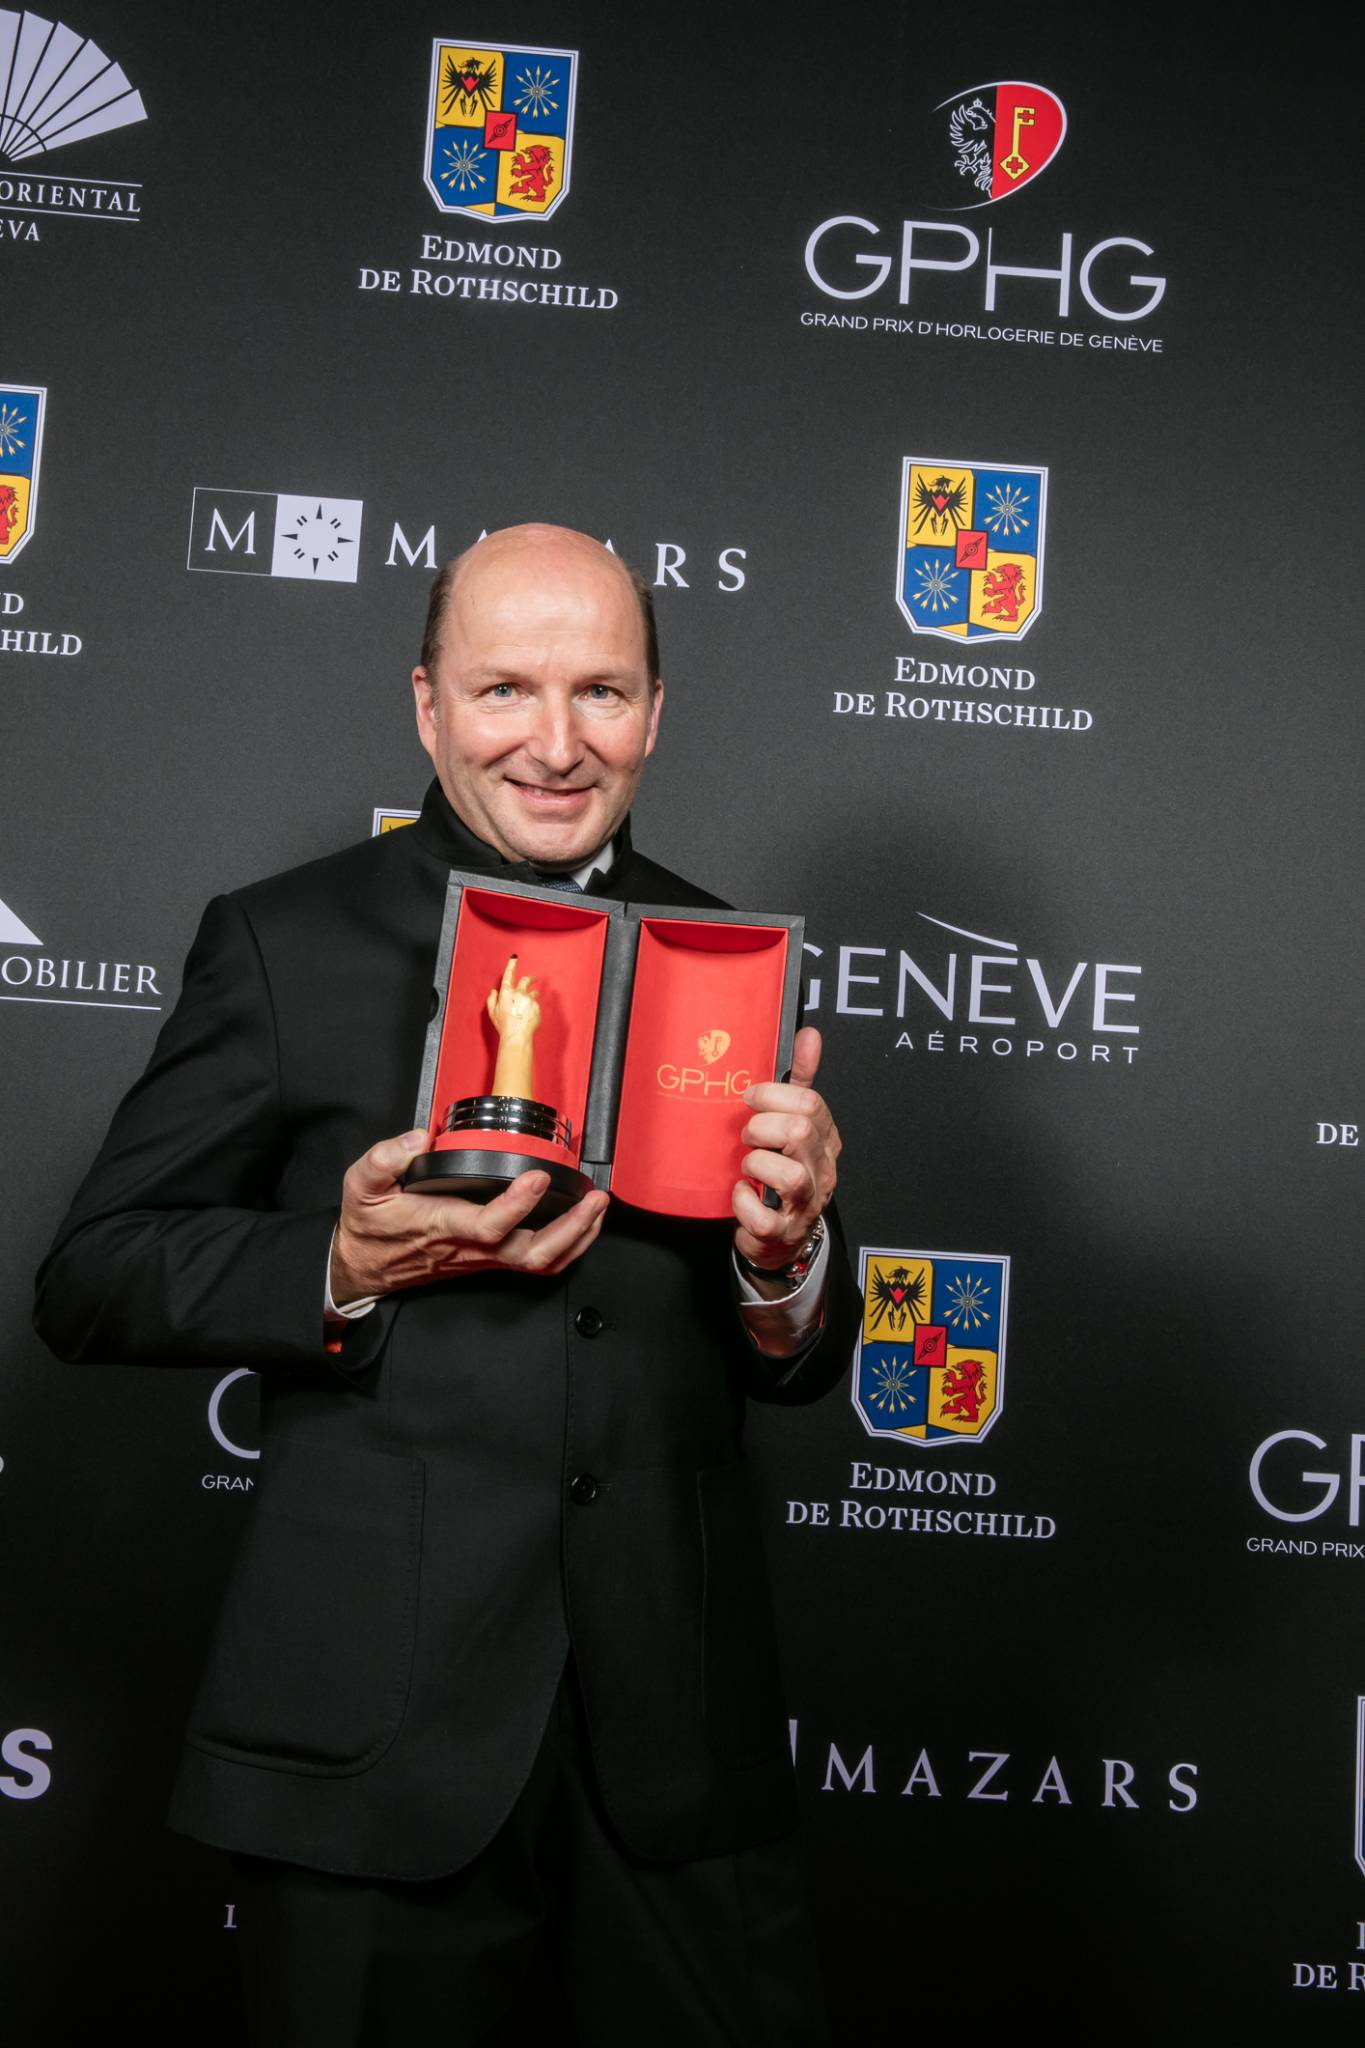 Kari Voutilainen (Founder of Voutilainen, winner of the Men's Watch Prize 2015)